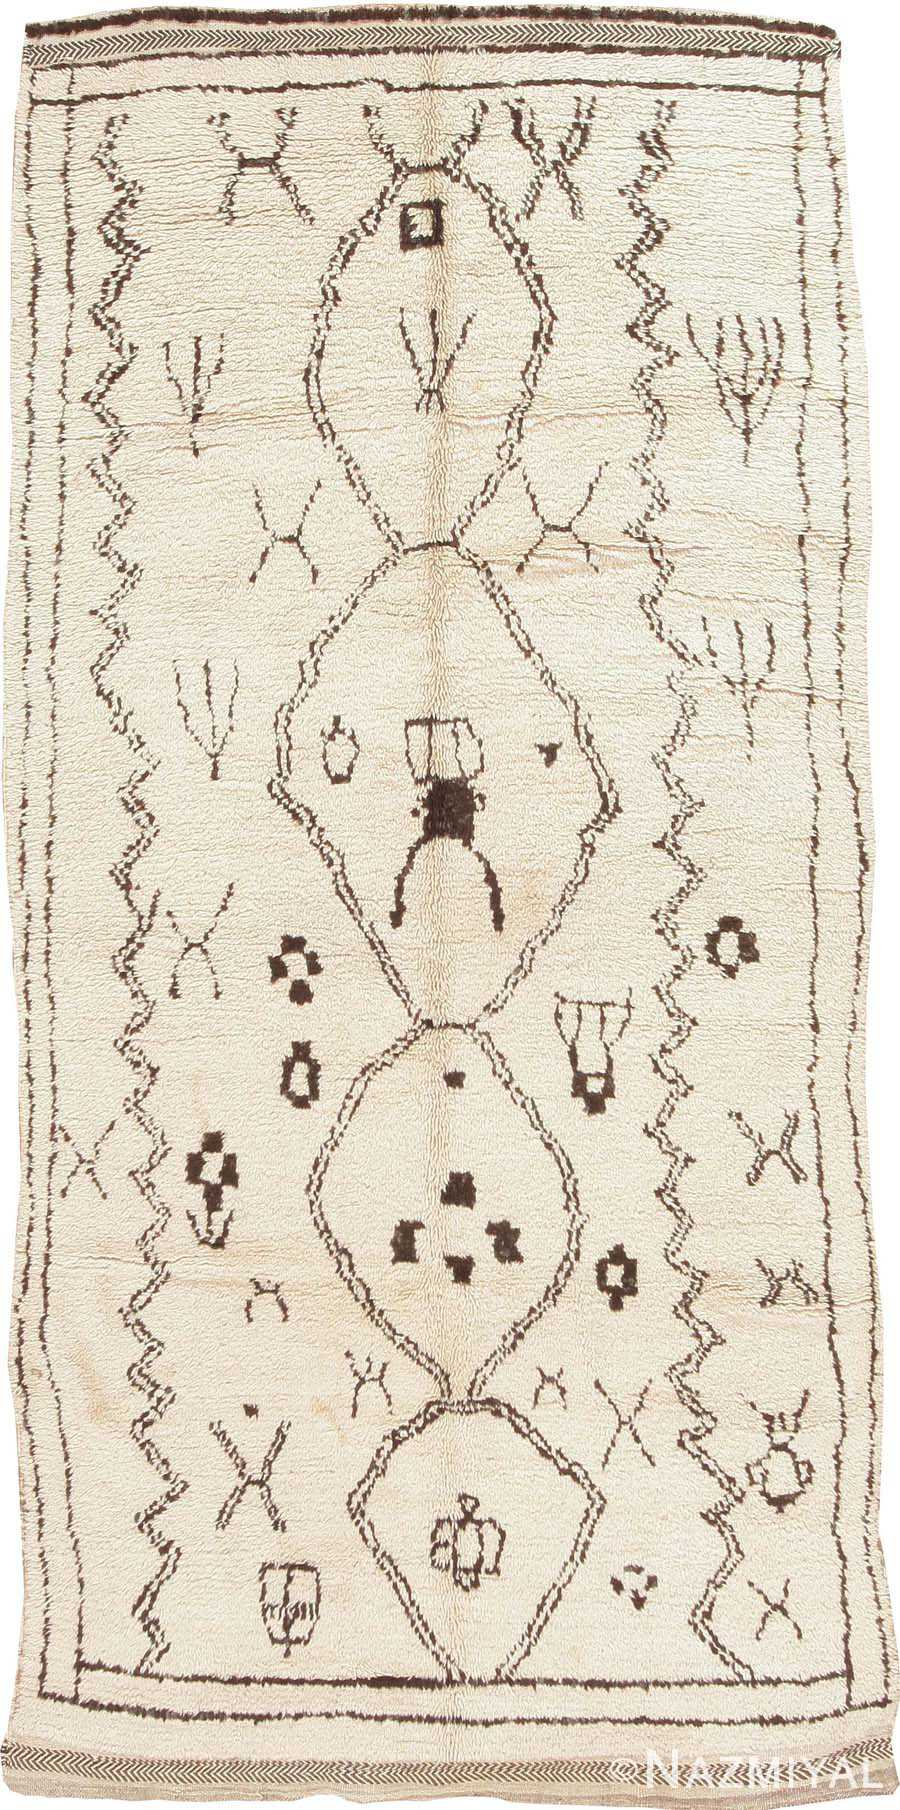 Antique Moroccan Rug #44586 Detail/Large View